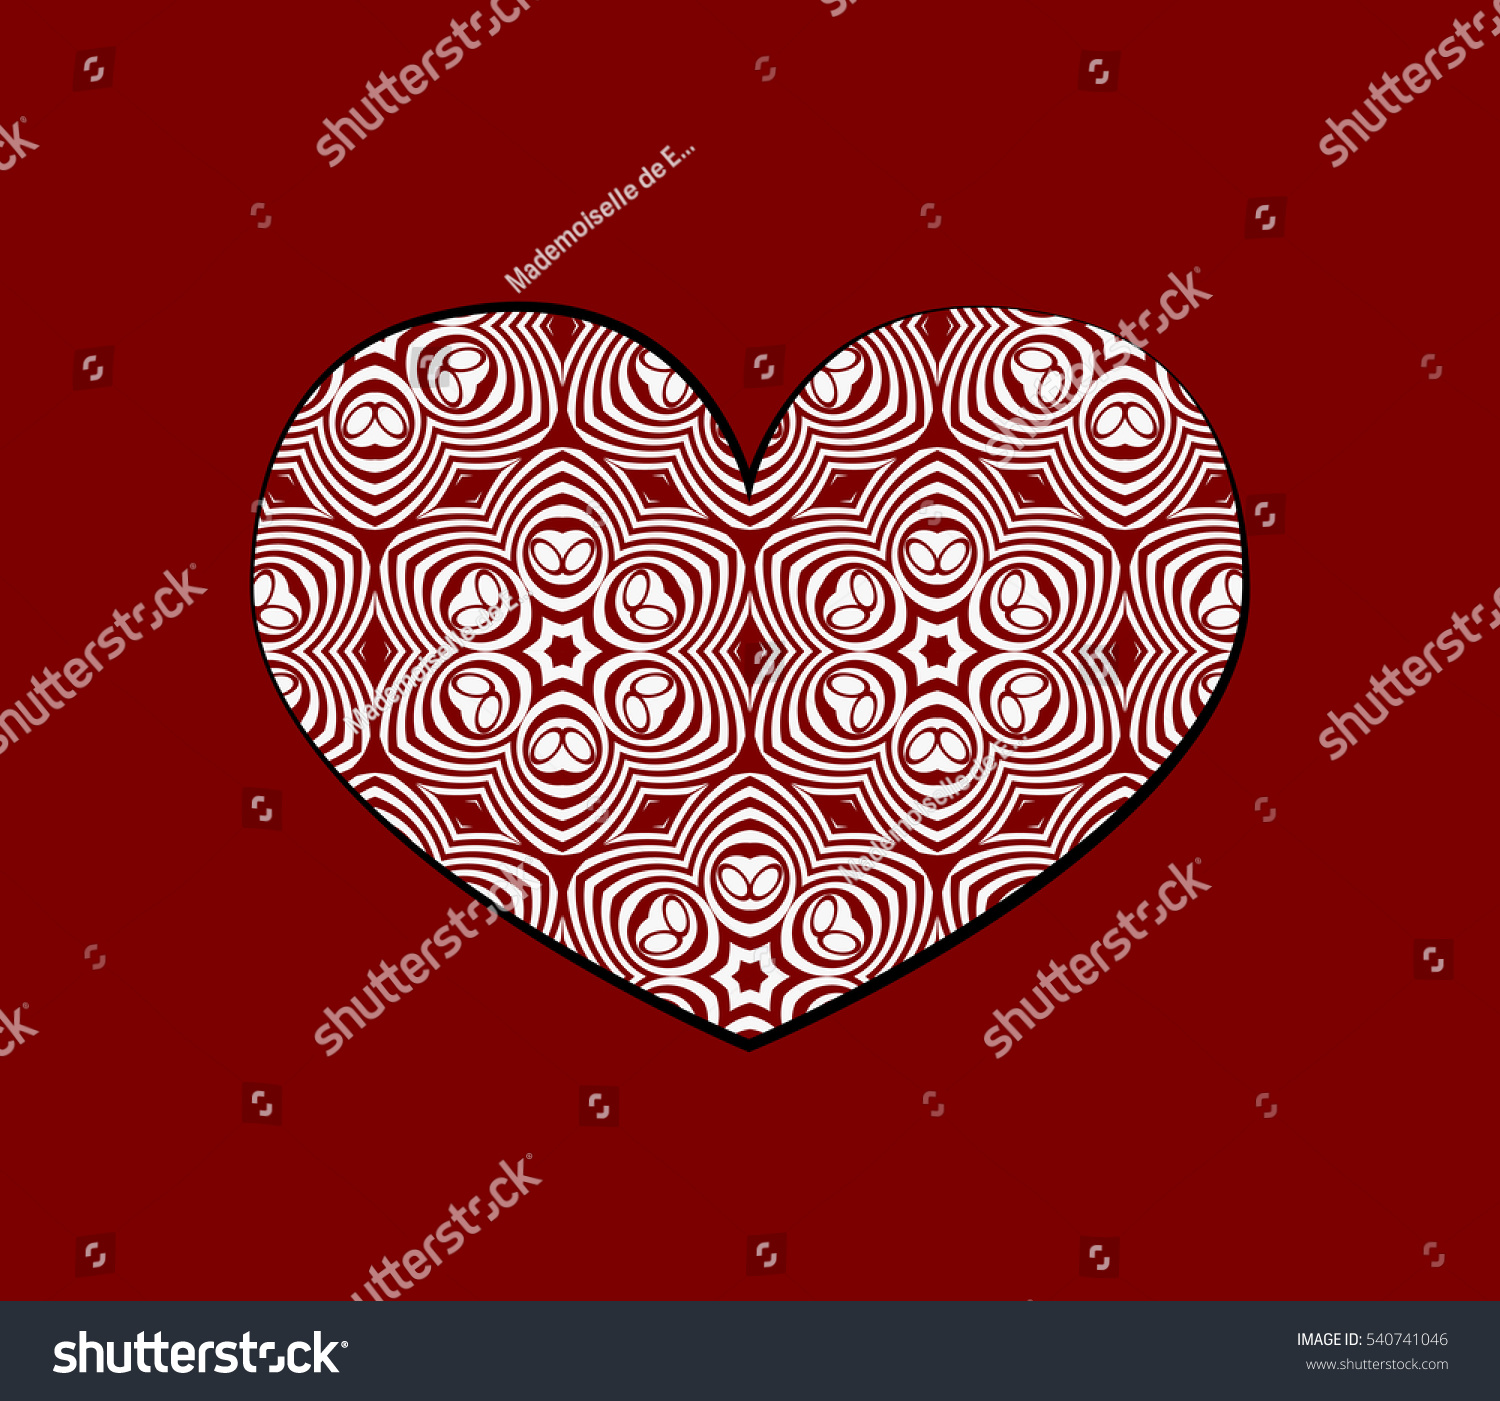 romantic patterned heart. Card for Valentine\'s Day, wedding ...